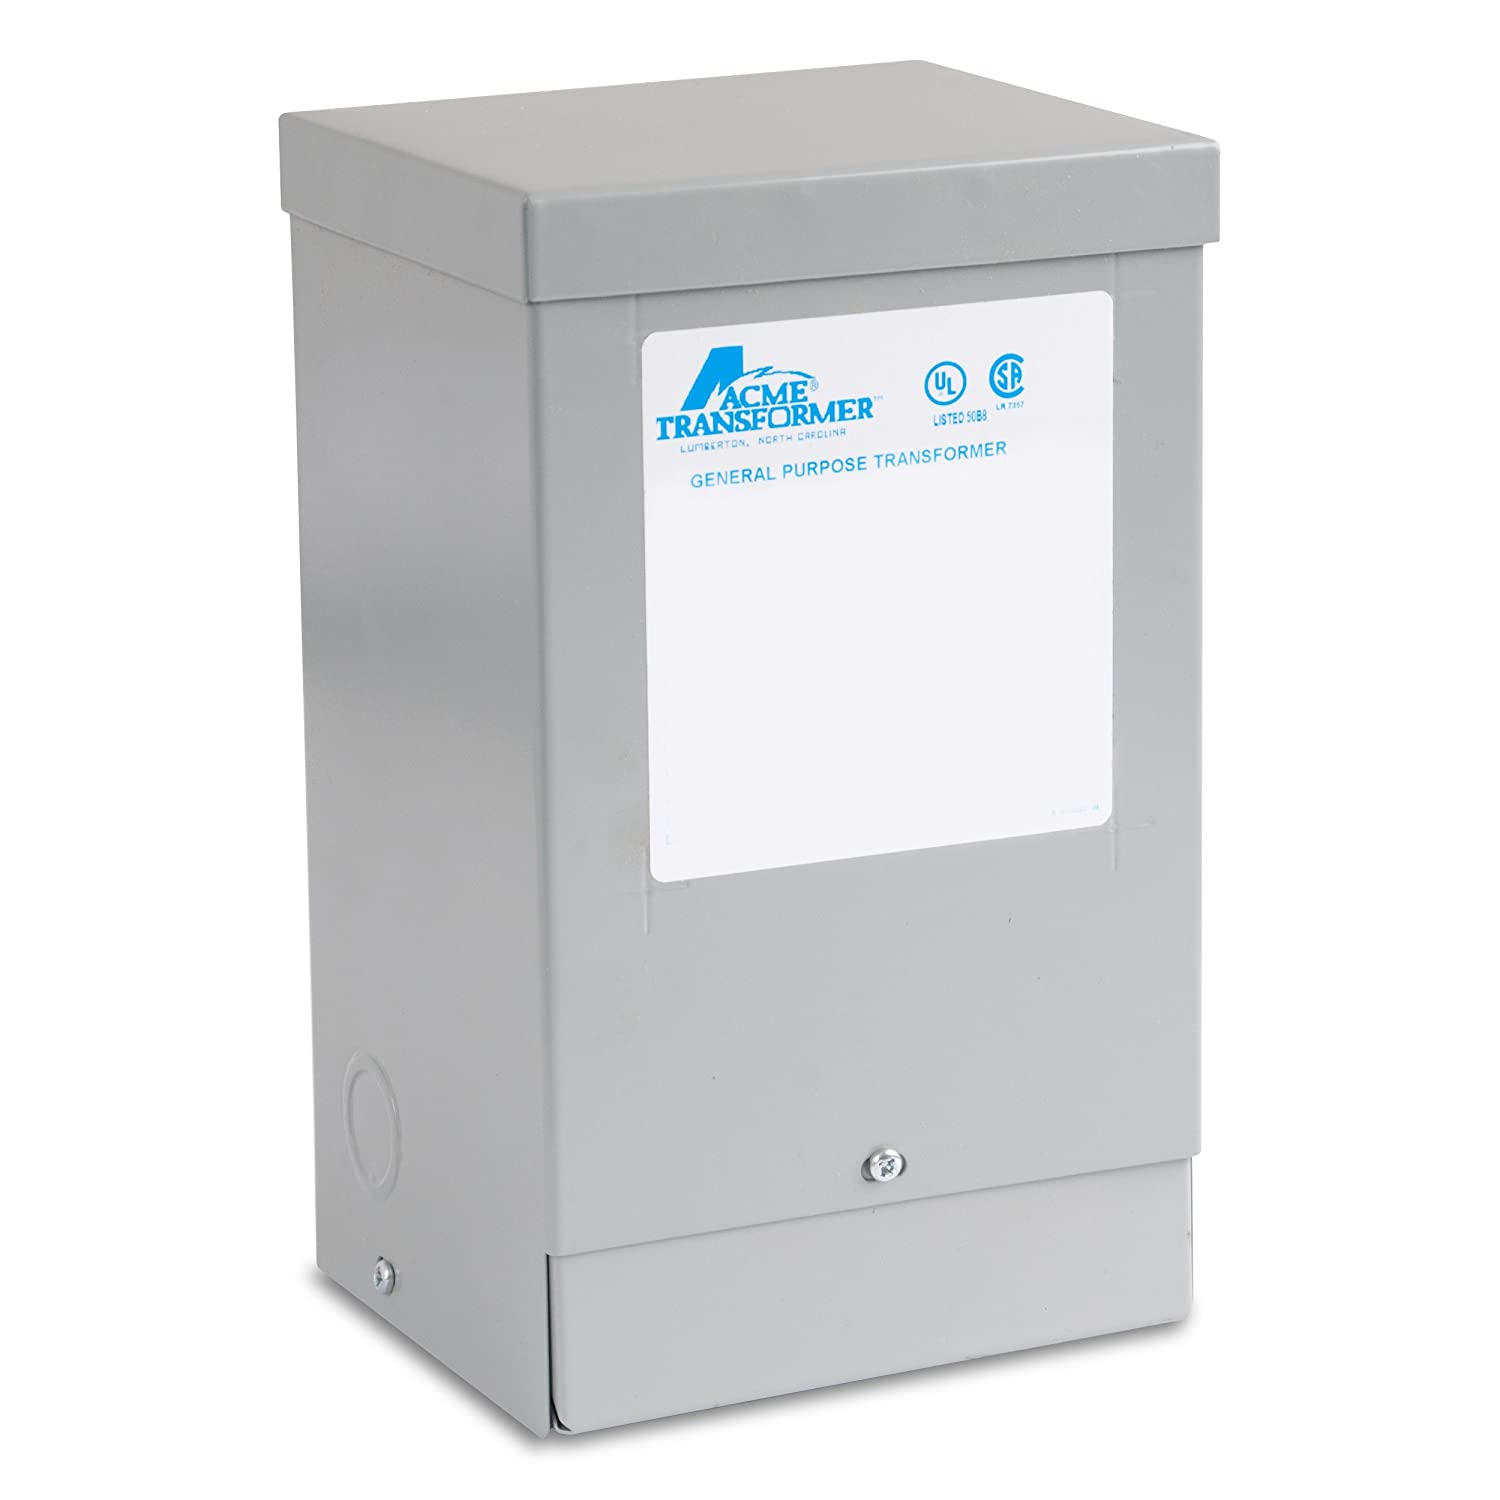 Acme OFFicial site Electric T111683 Buck-Boost Max 52% OFF Transformer Phase Hz 1 60